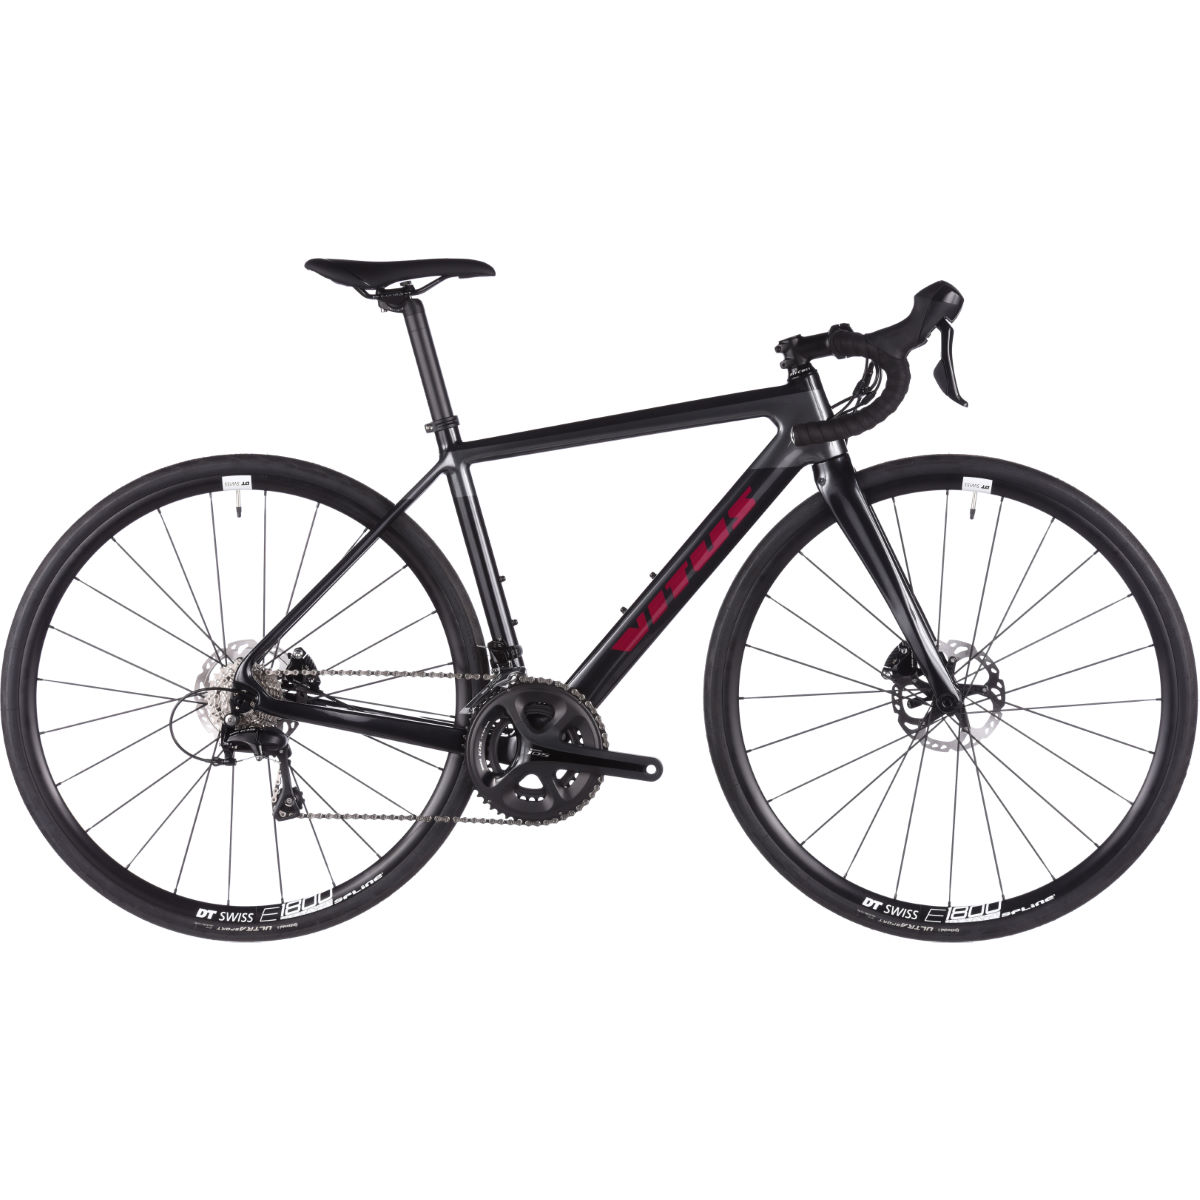 Vitus Venon CRW Disc Road Bike - 105